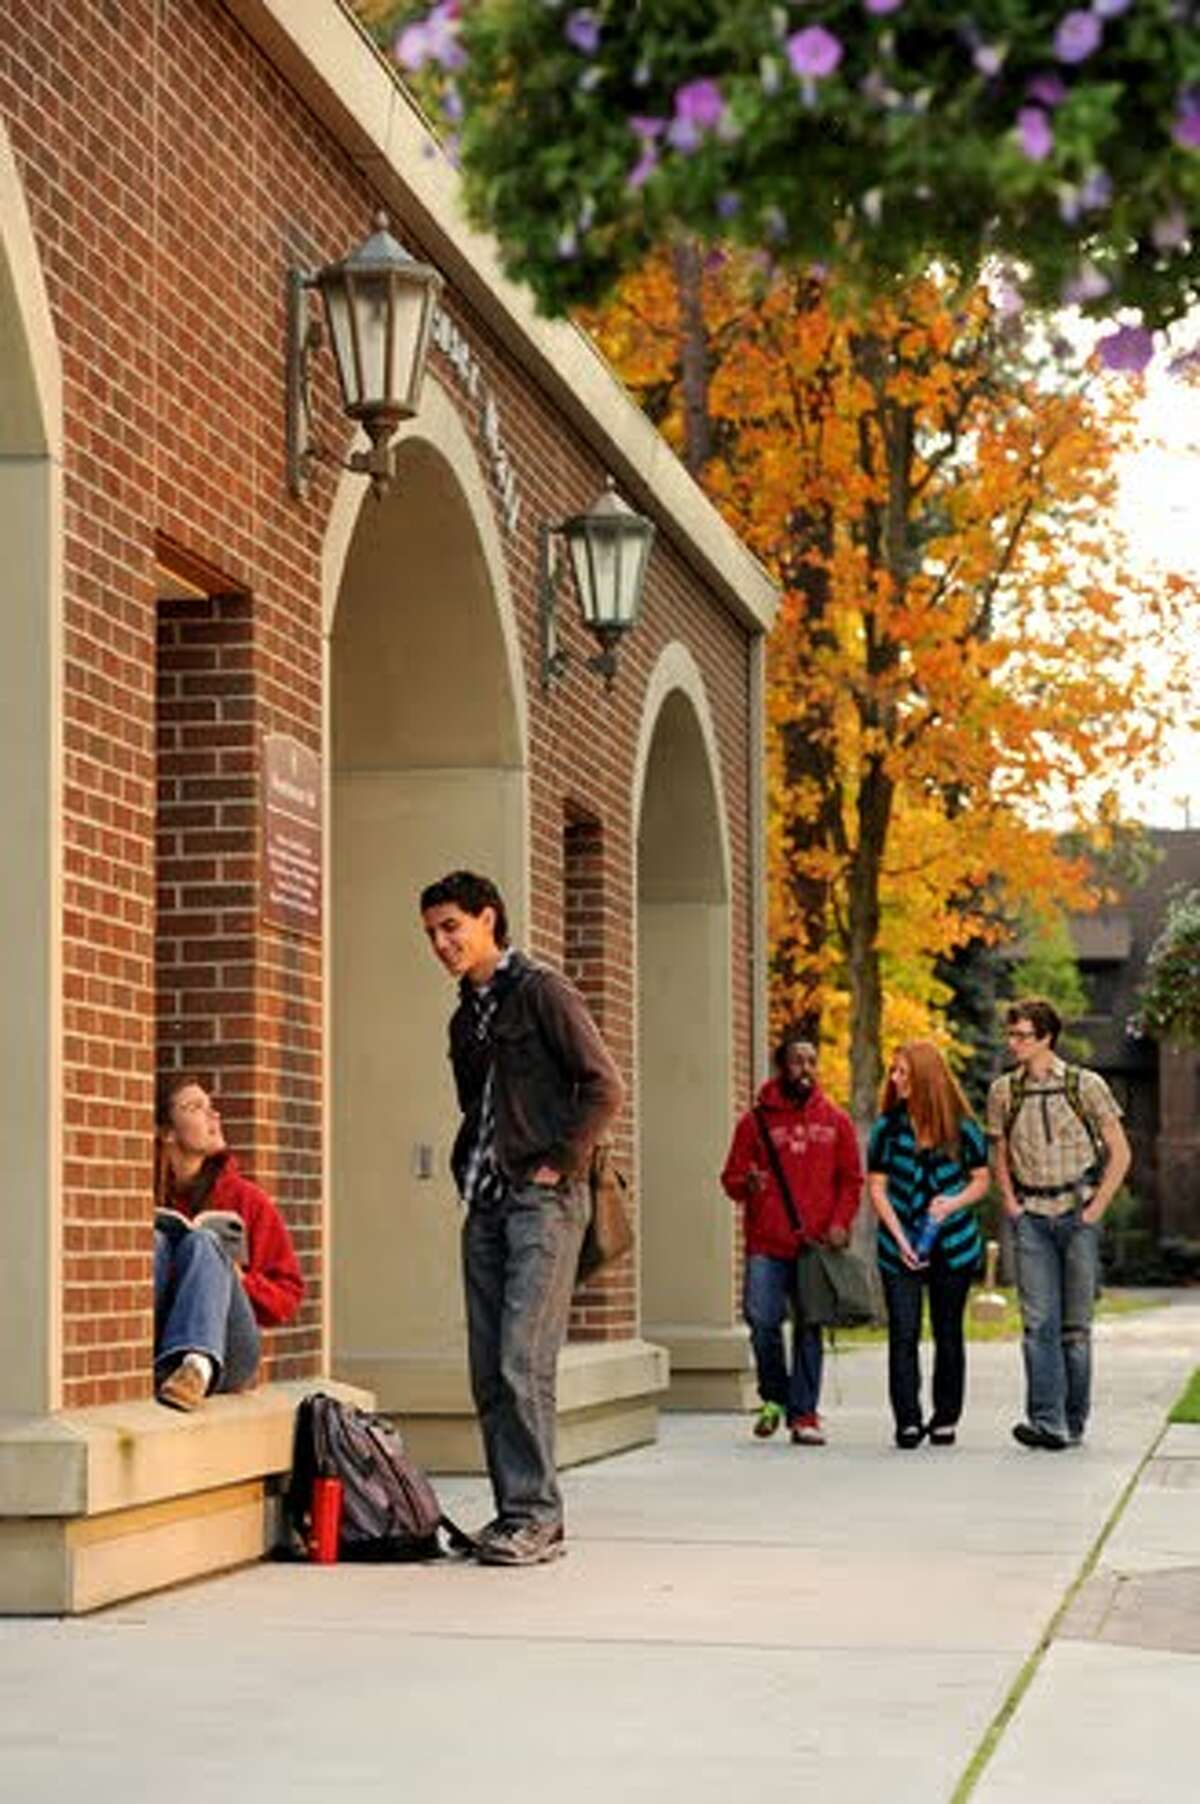 12. Whitworth University (273rd overall) Total annual cost: $50,329 Average annual salary after attending: $41,200 (according to Dept. of Education statistics)